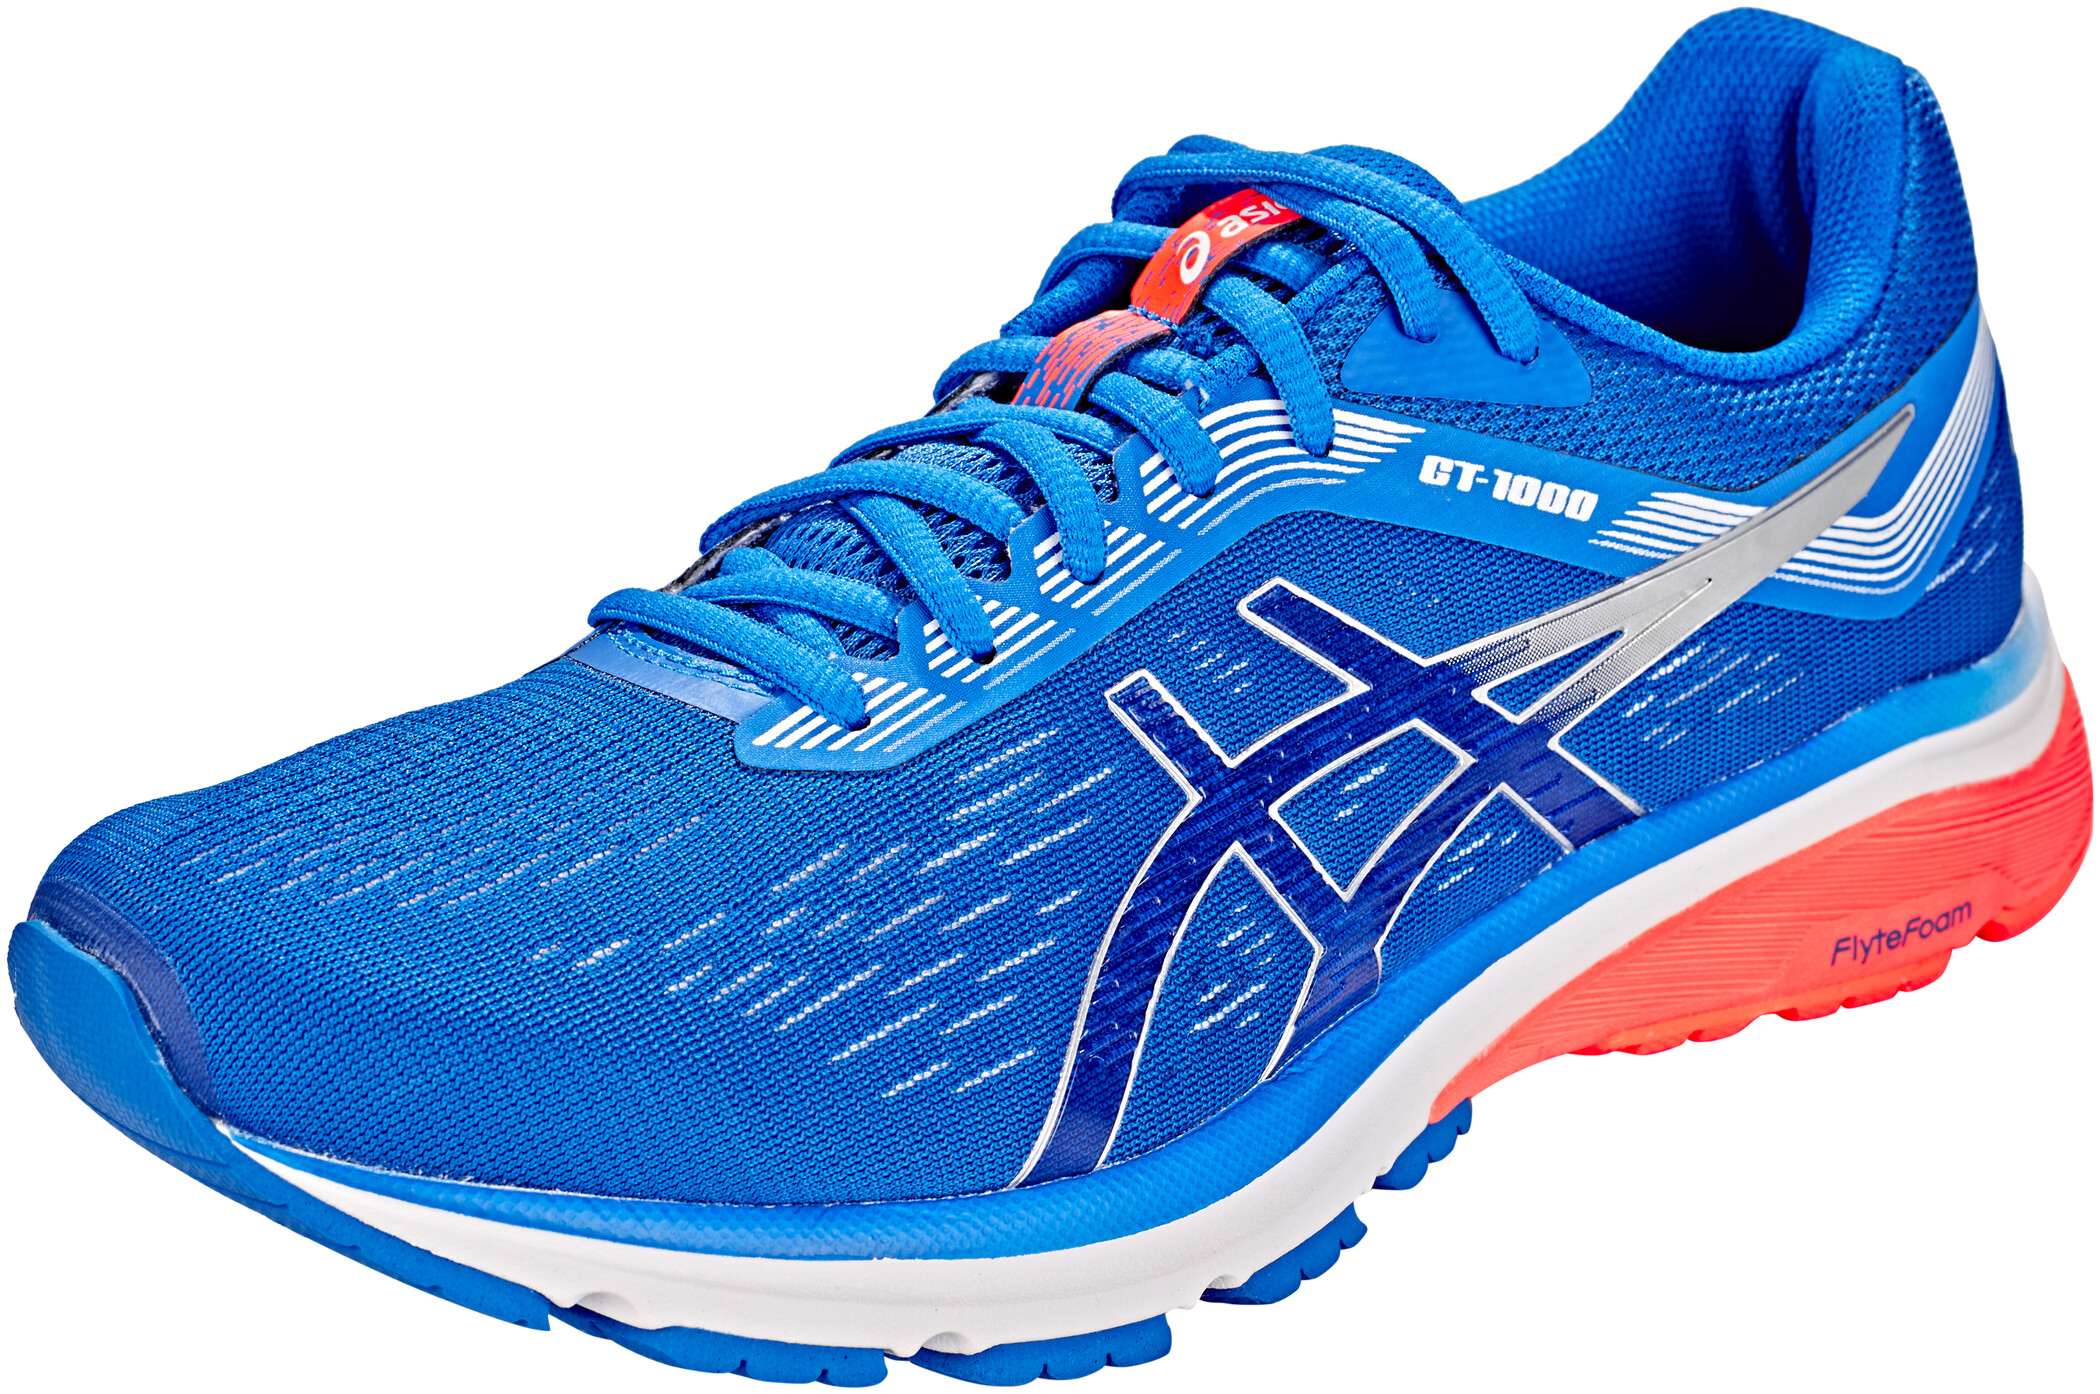 asics GT-1000 7 Sko Herrer, illusion blue/silver | Running shoes